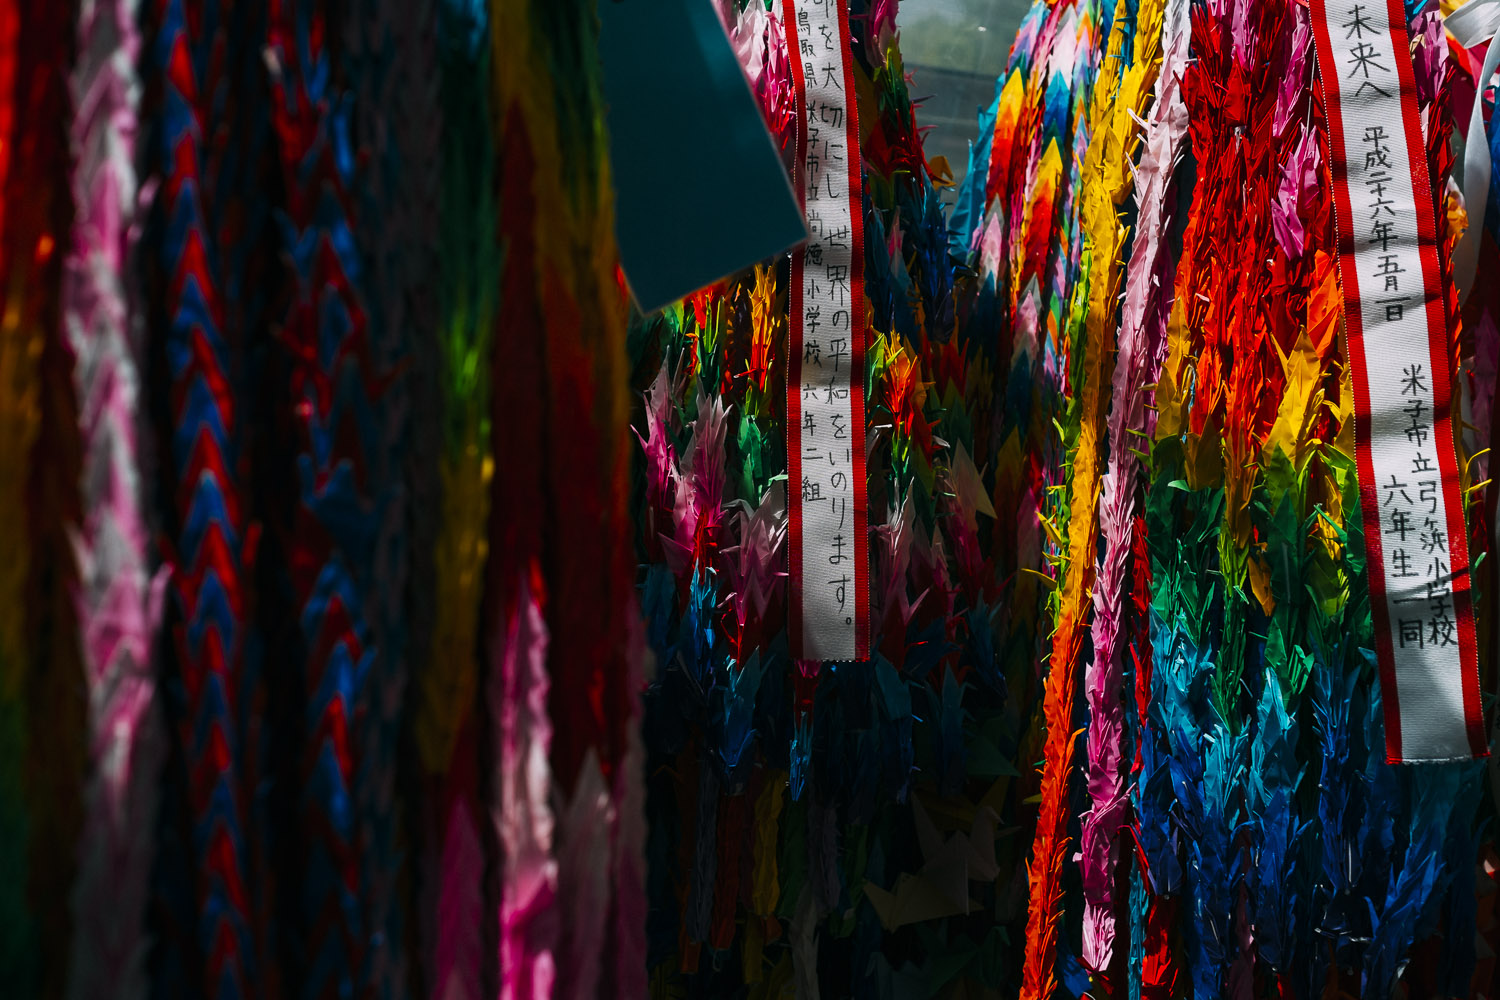 Hundreds of paper cranes are hung here by children with messages for peace.